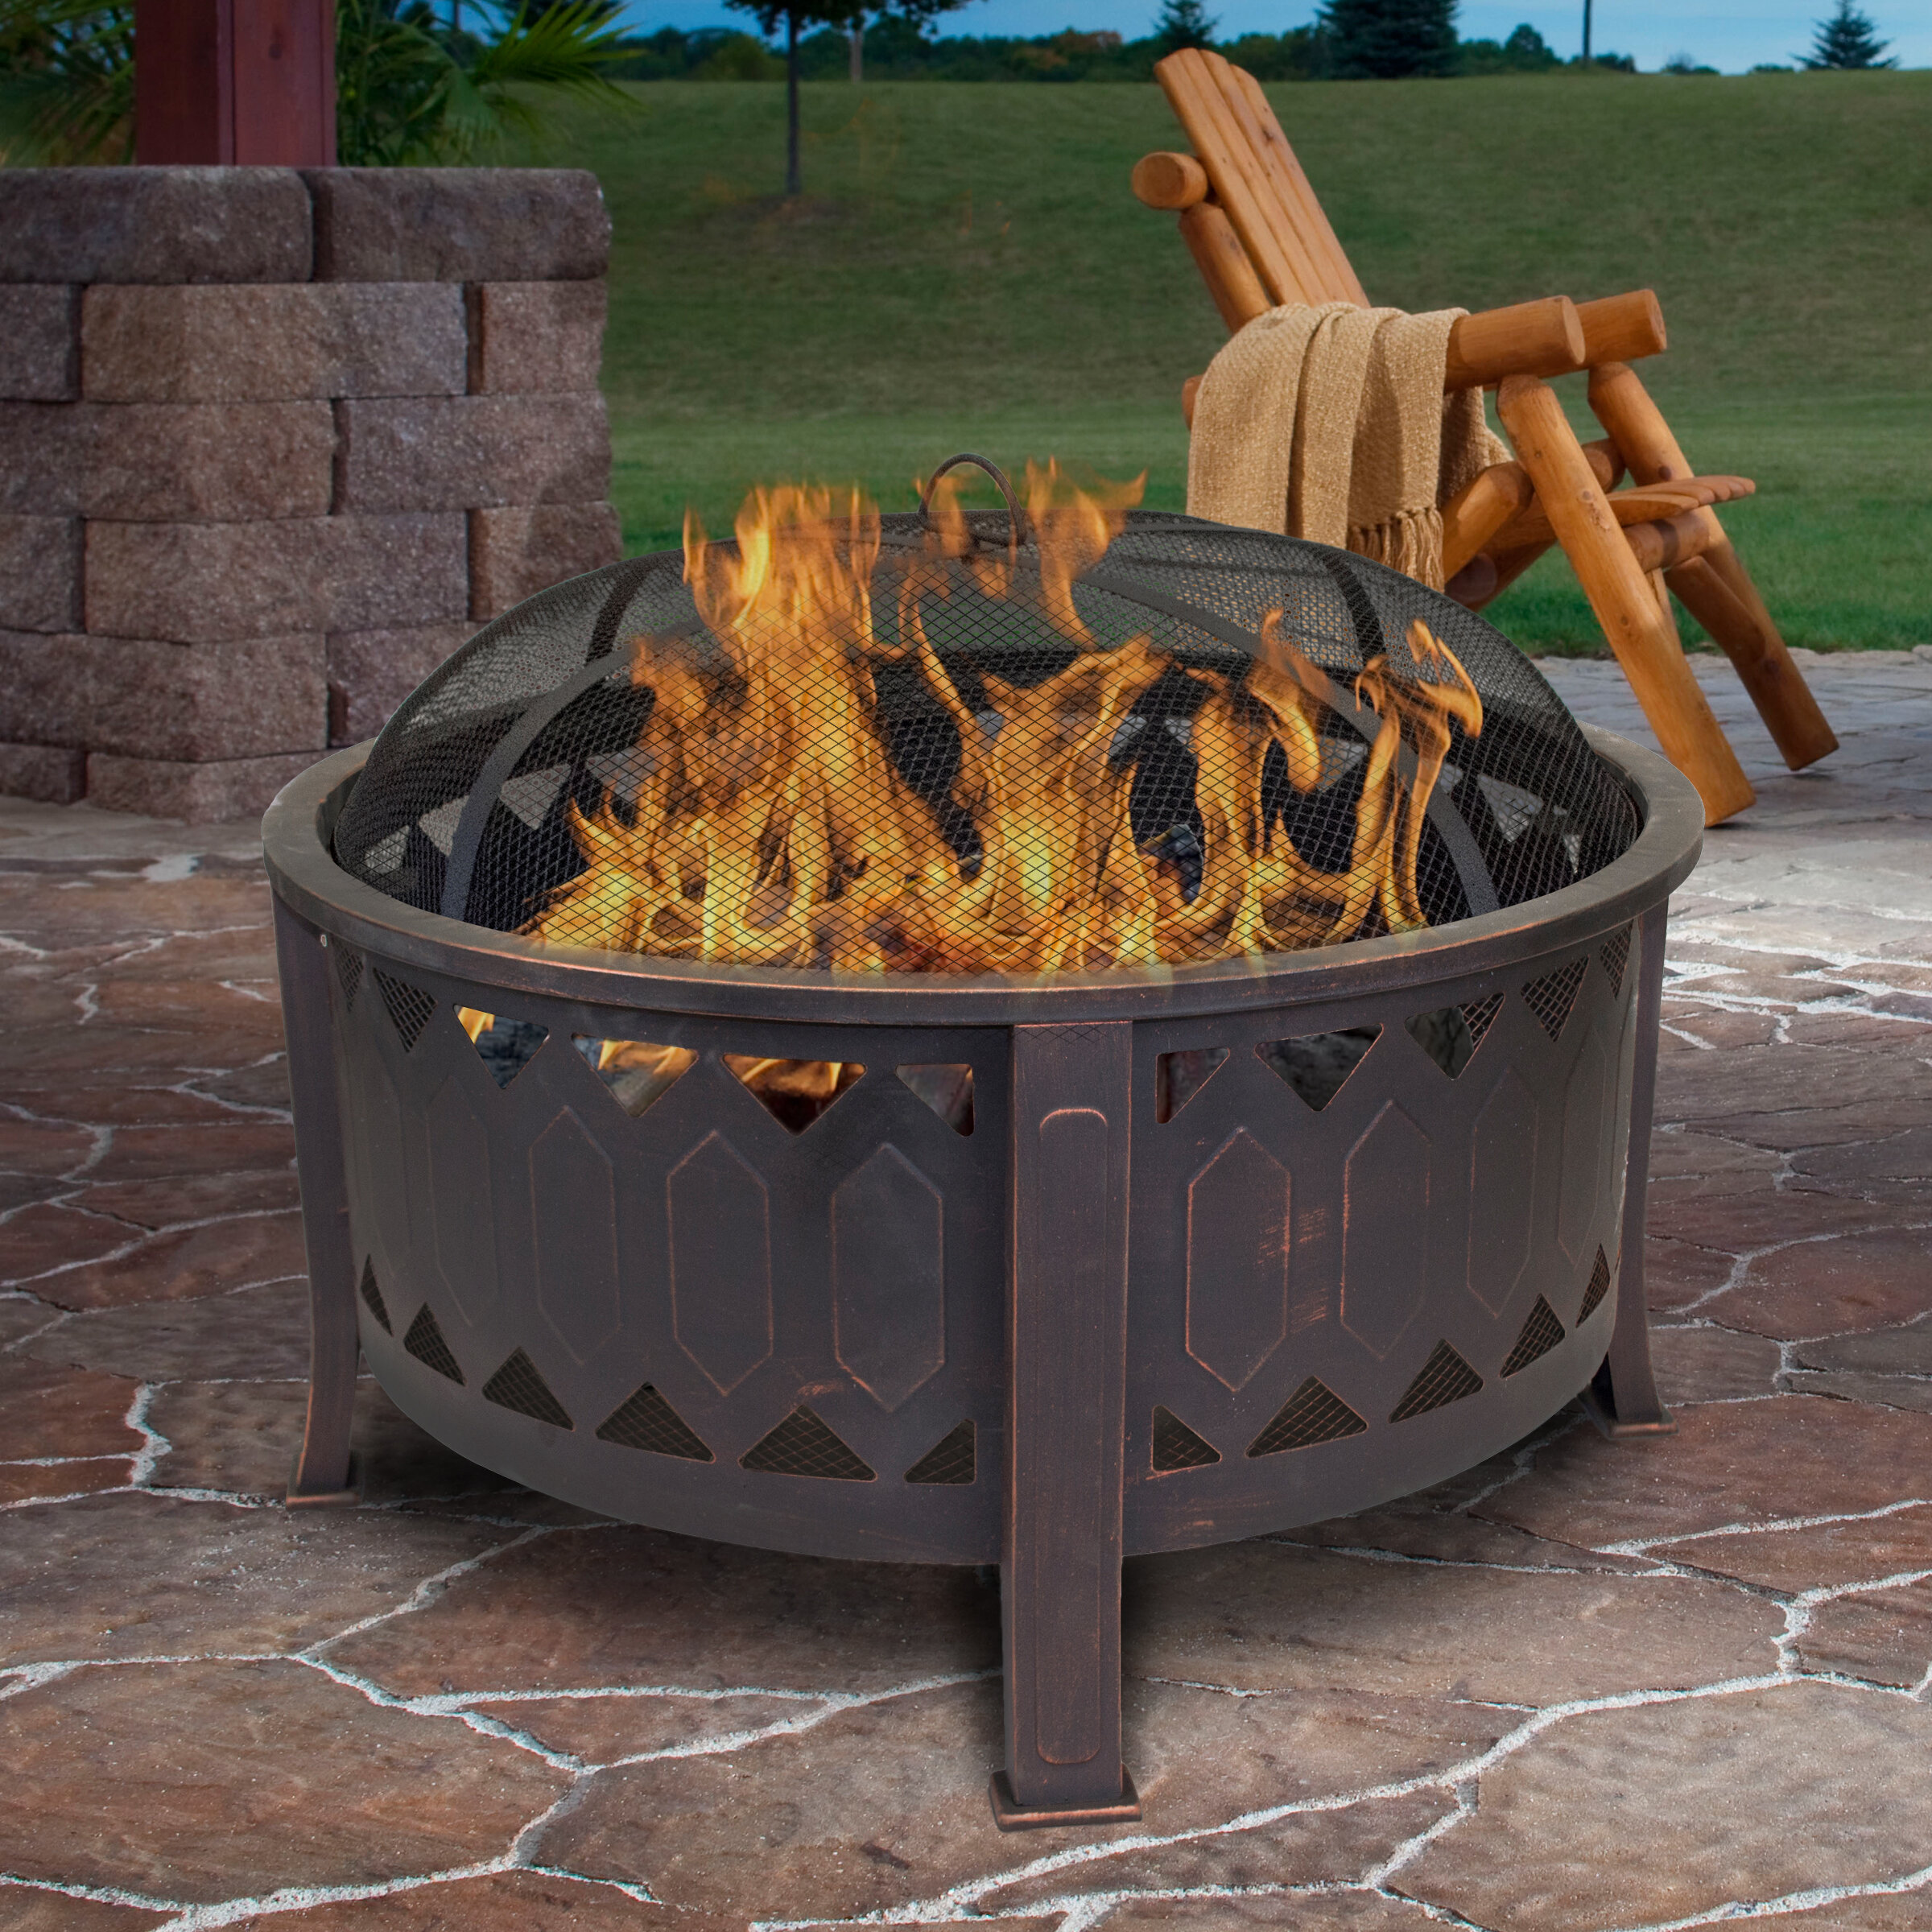 Outdoor Leisure Products Steel Wood Burning Fire Pit Reviews Wayfair